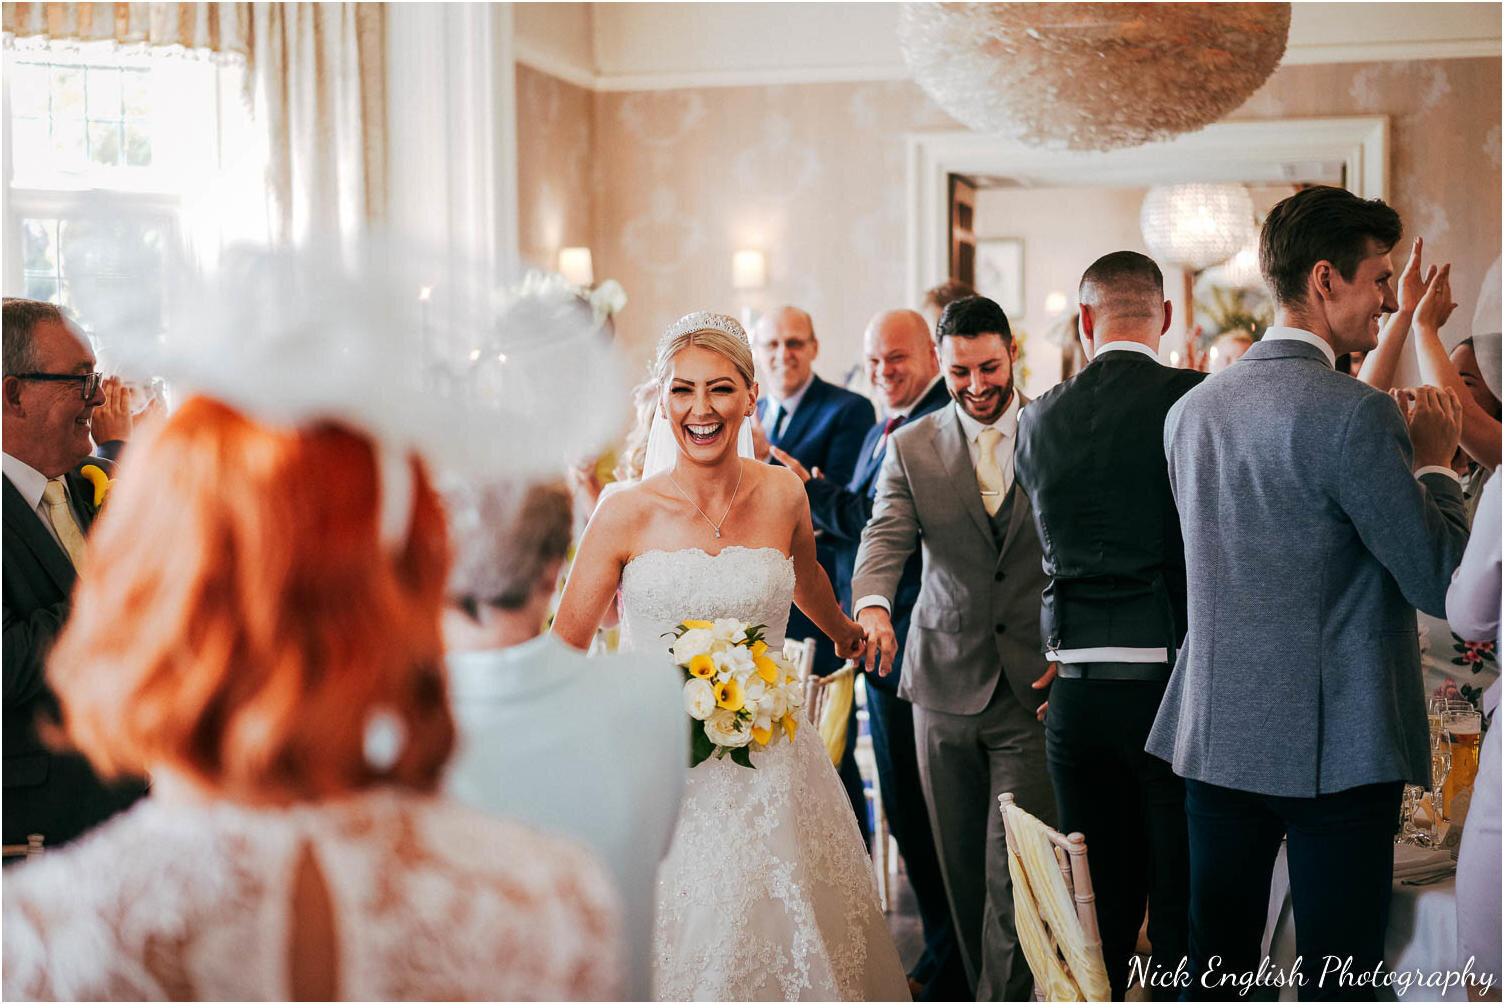 Falcon_Manor_Yorkshire_Wedding_Photographer-81.jpg